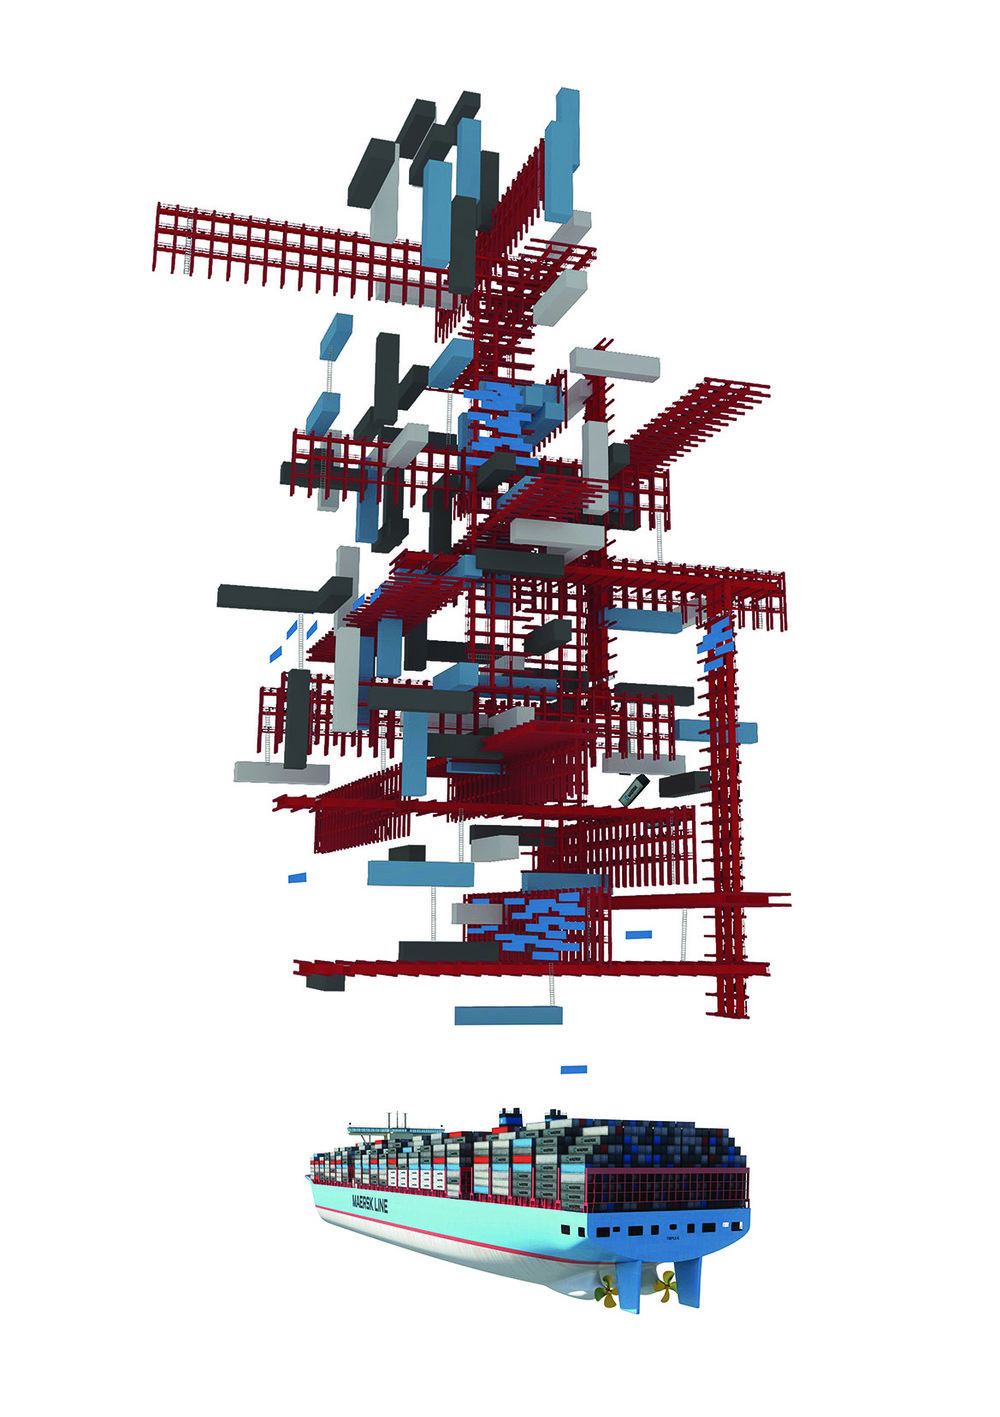 containership-deconstructed-min.jpg